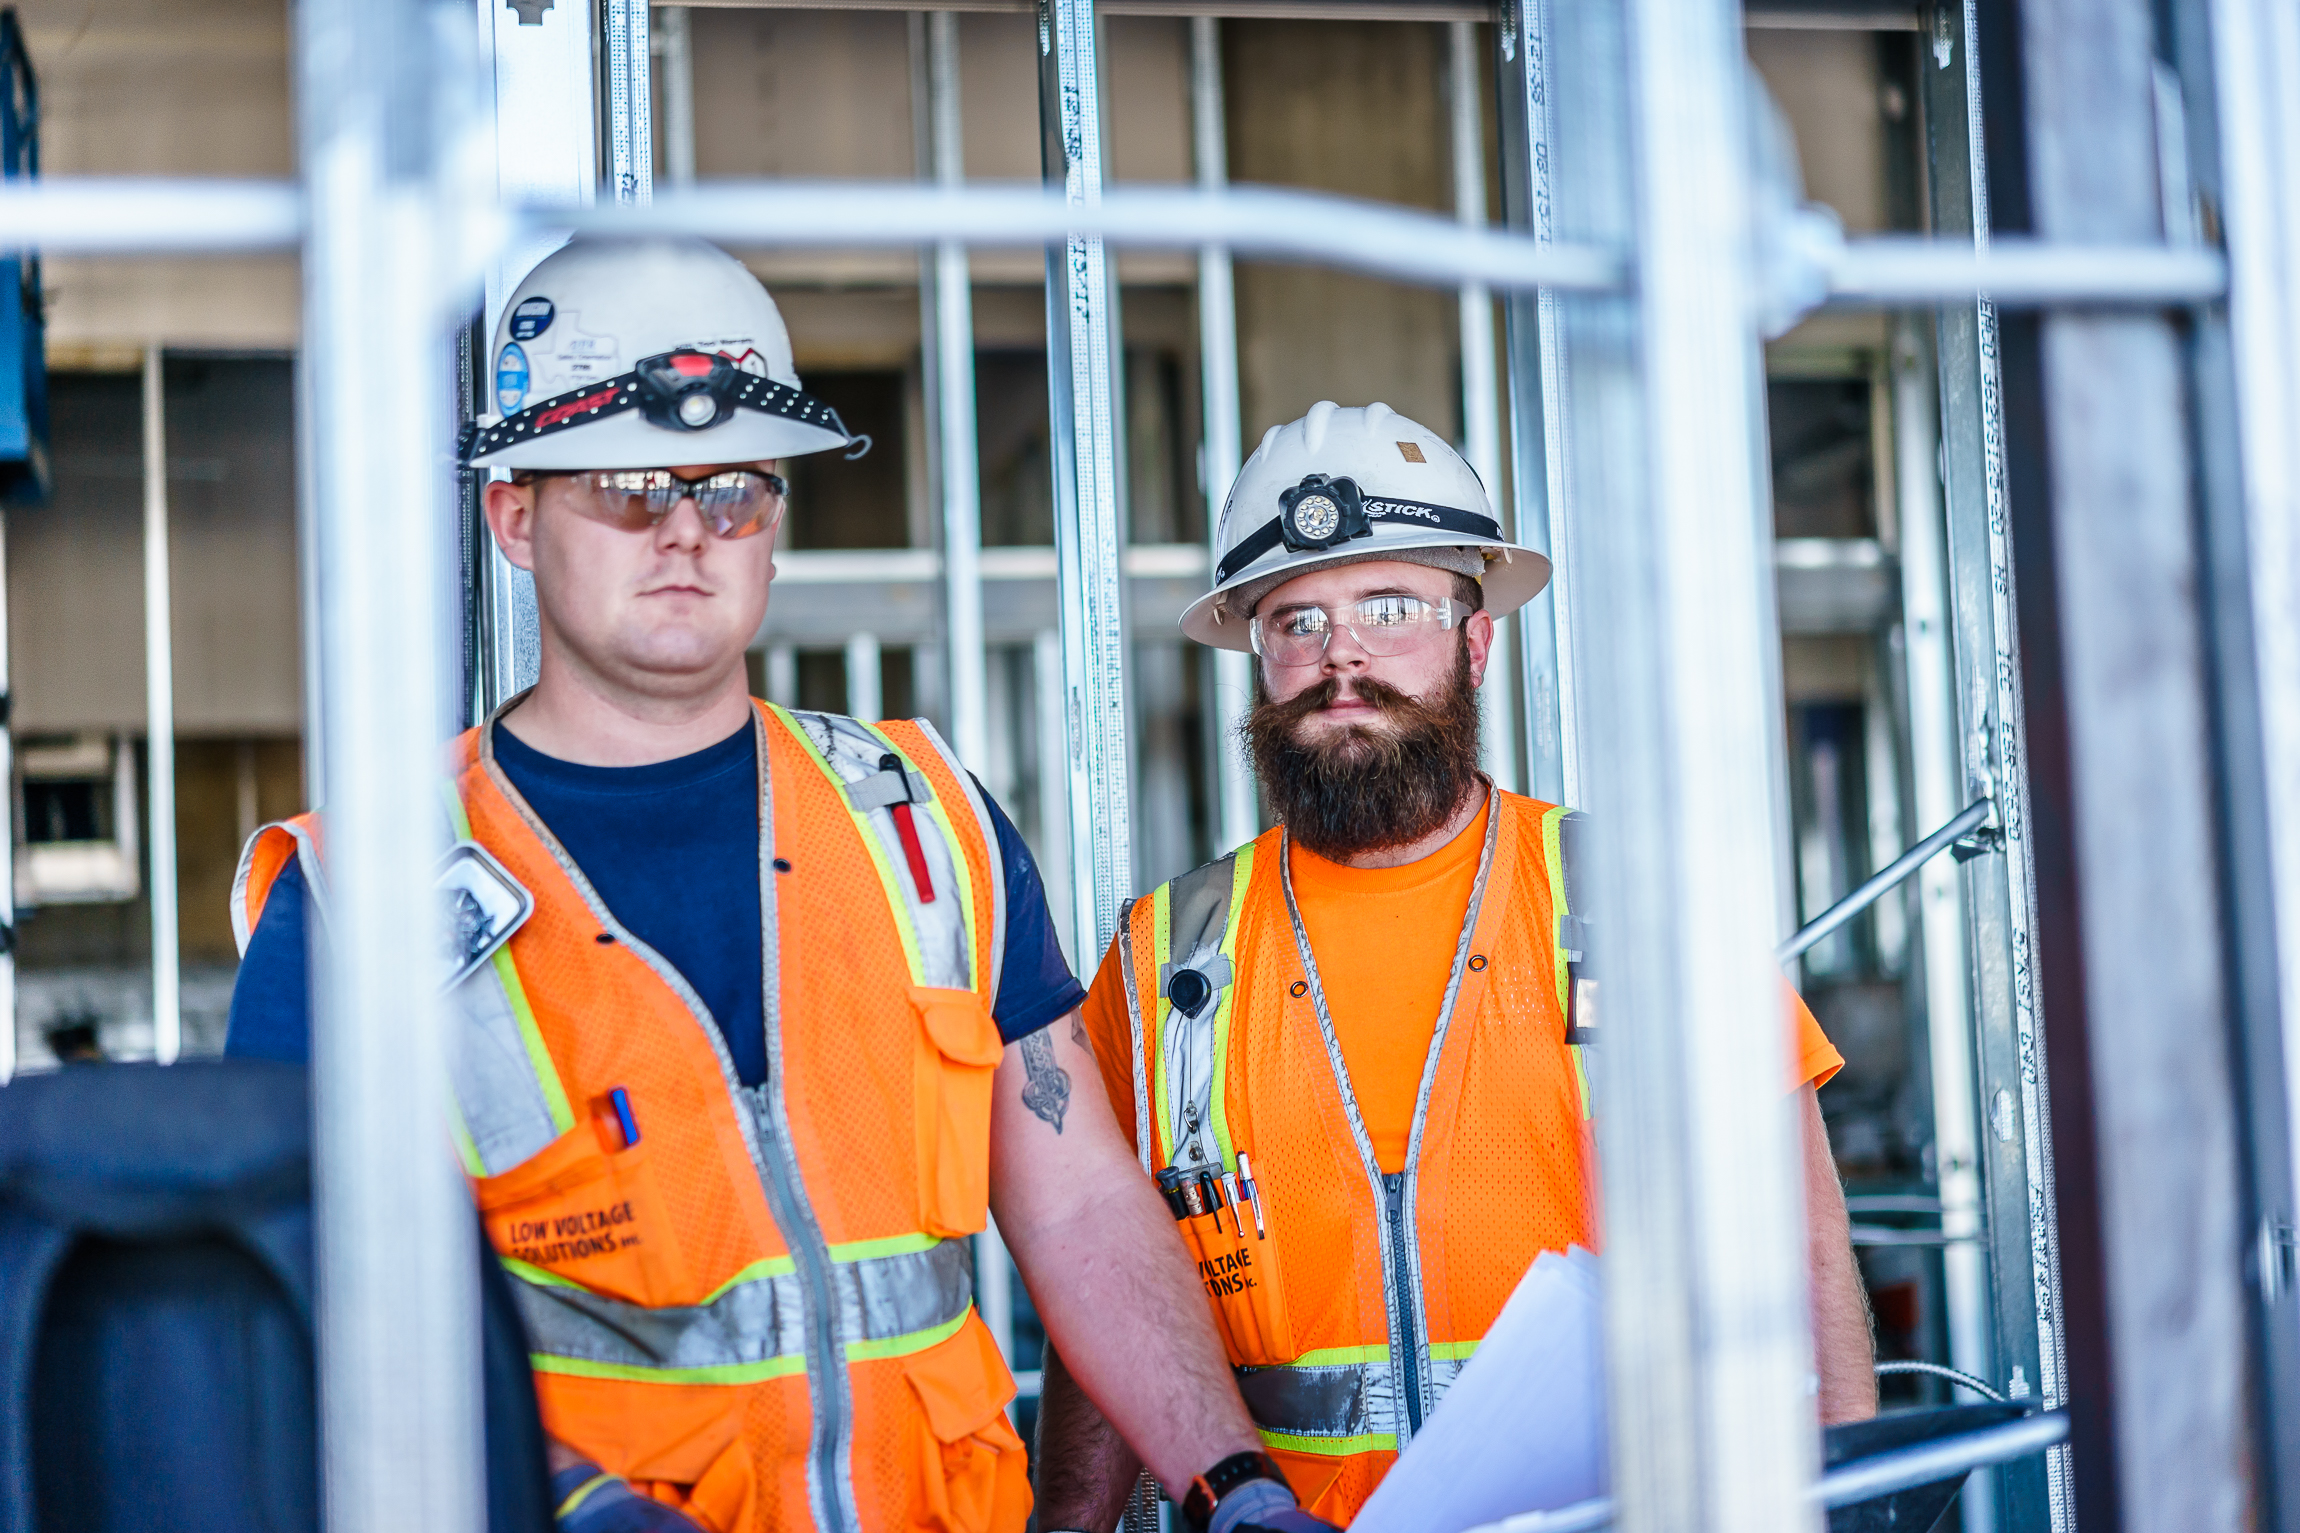 Two Low Voltage Solutions employees smile for the camera